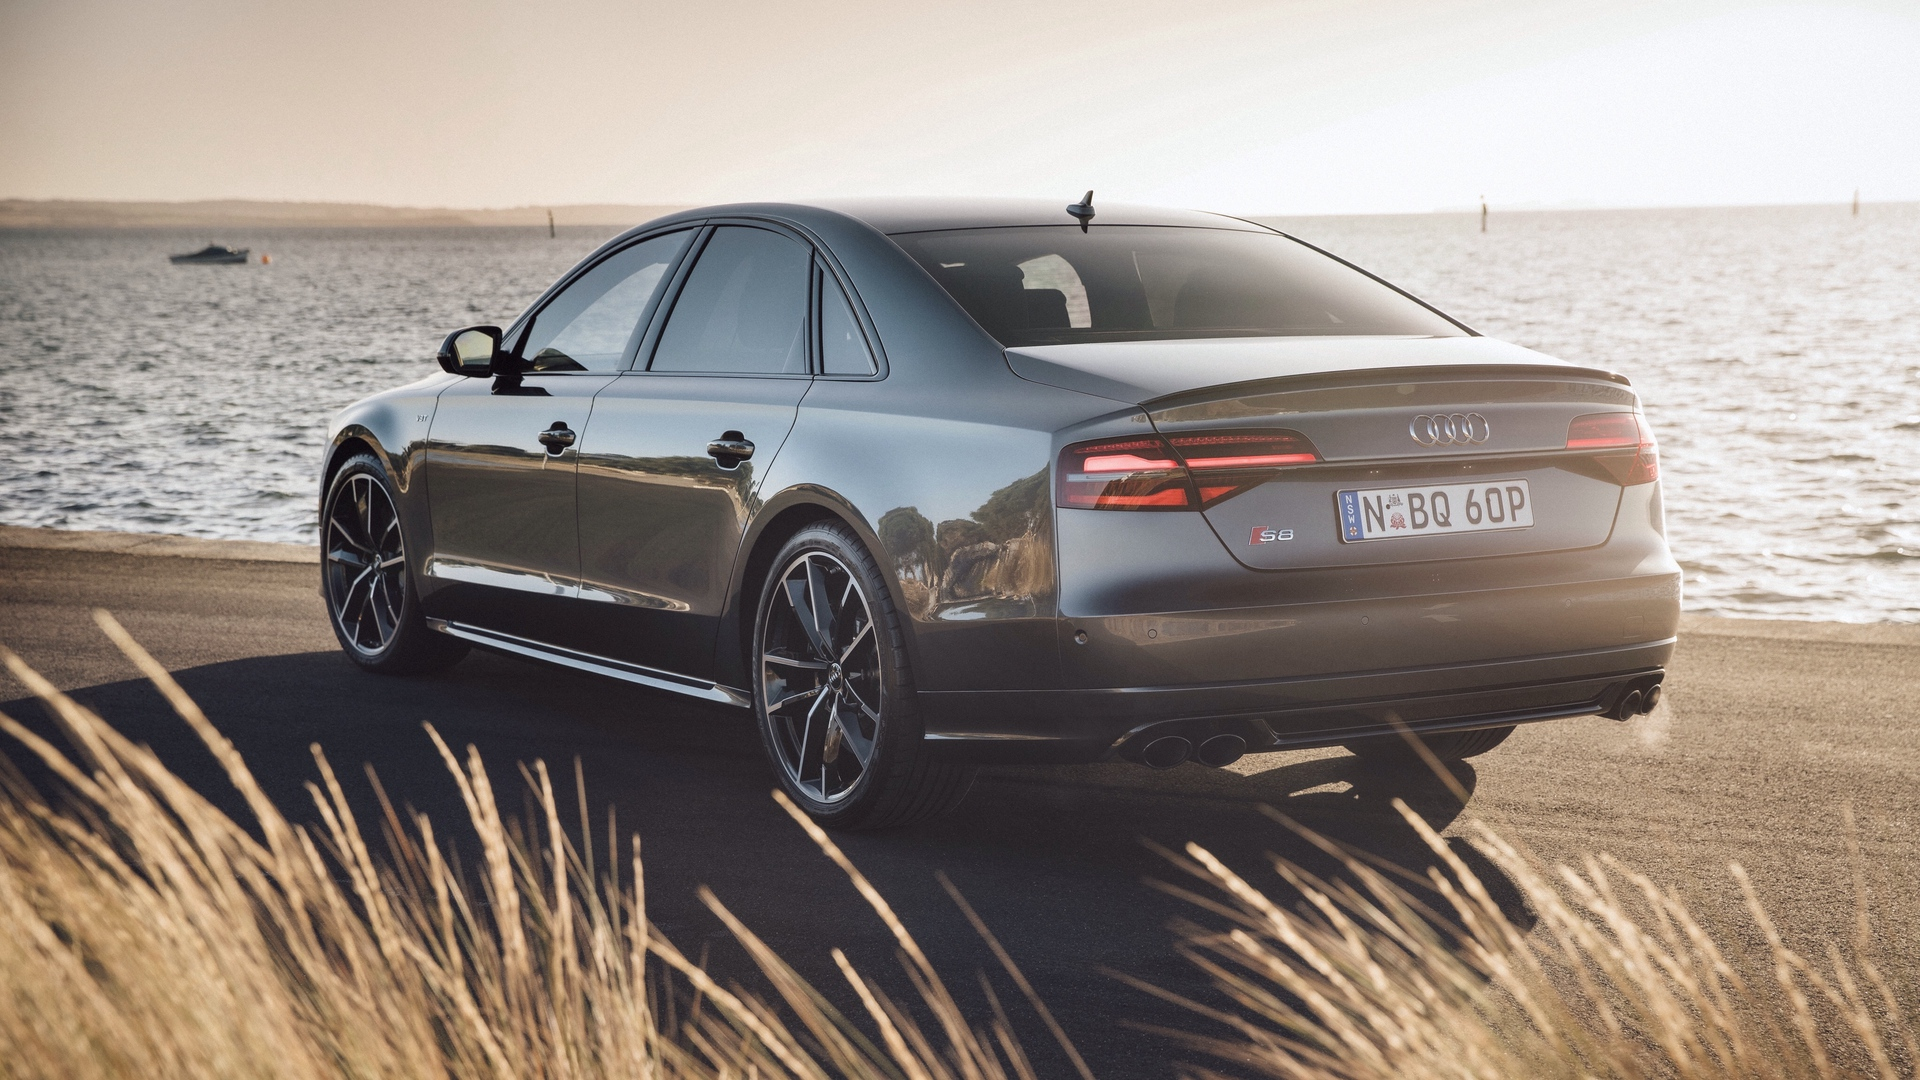 Audi S8 Rear View Wallpaper   Wallpaper Stream 1920x1080